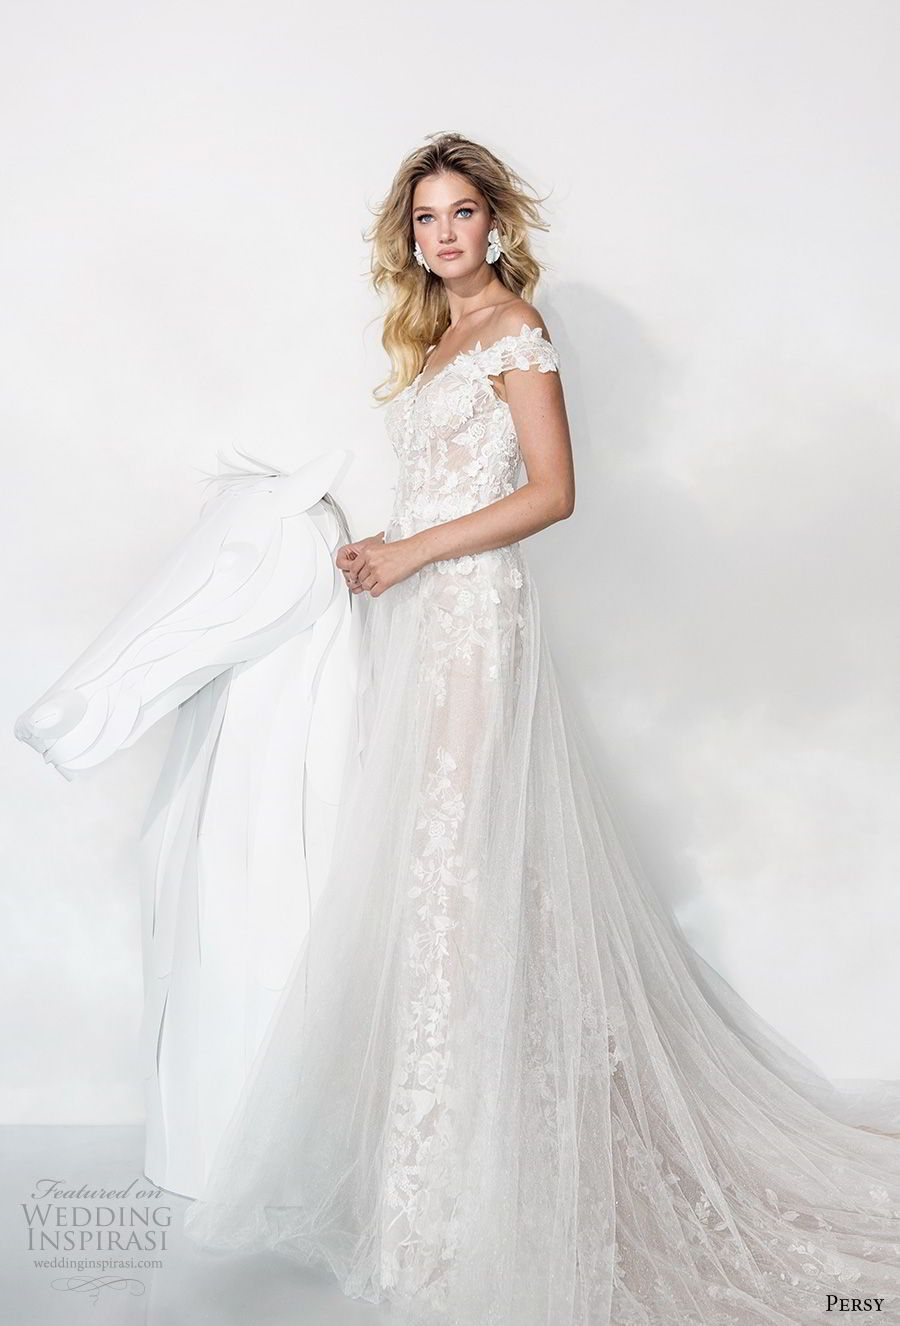 Lace wedding dress with back out january 2019 Persy Couture  Wedding Dresses u ucAffaire de Fleursud Bridal